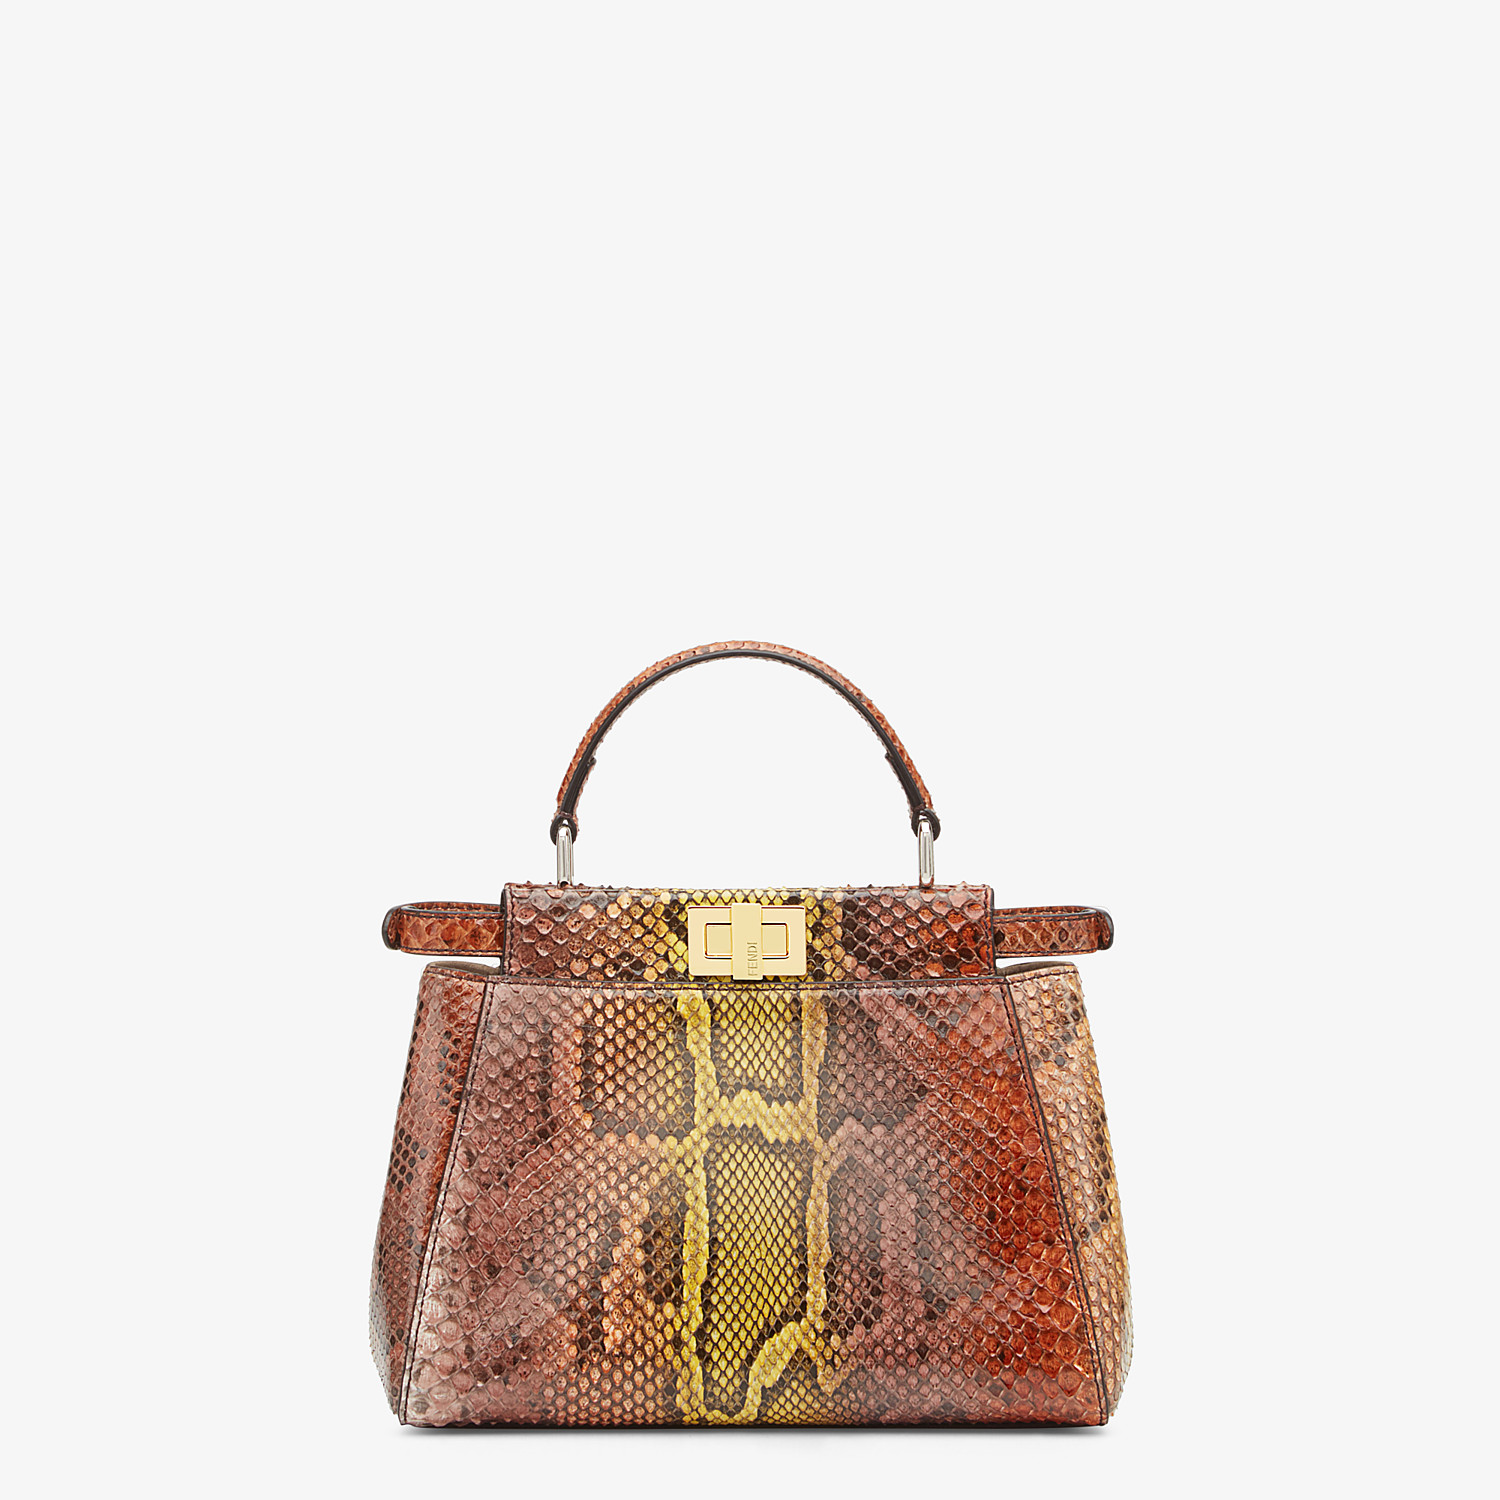 FENDI PEEKABOO ICONIC MINI - Borsa in pitone marrone - vista 3 dettaglio